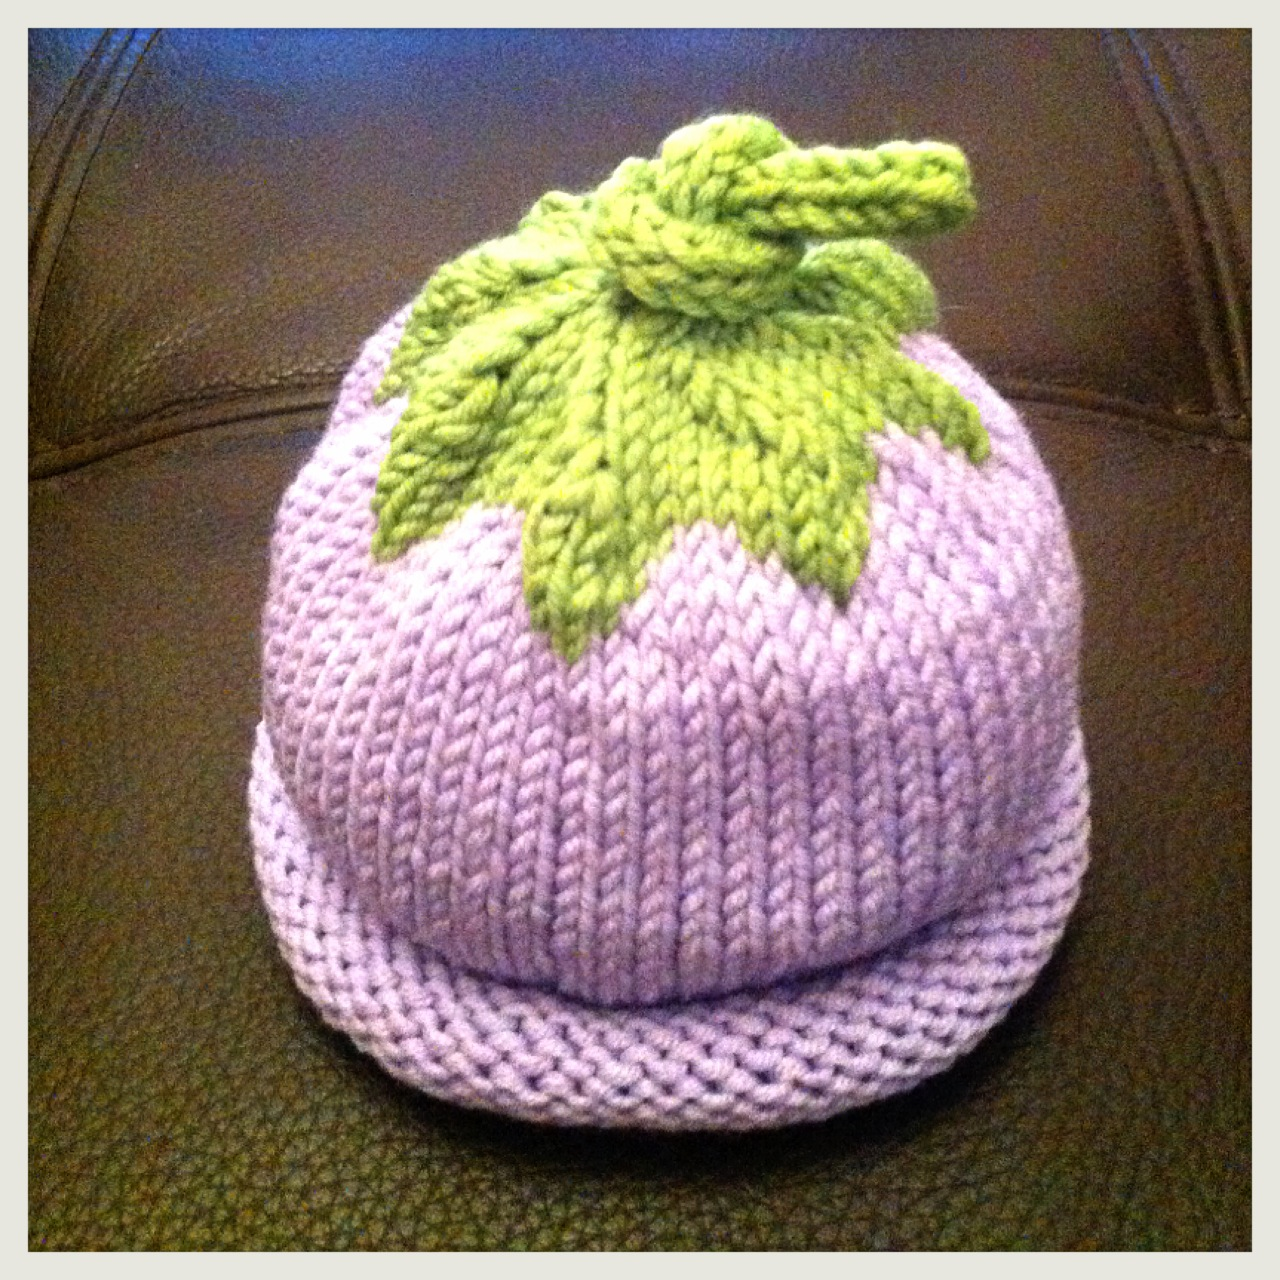 Knitting Pattern For Running Hat : keeping the blog up and running Follow me and see if I success in the attem...